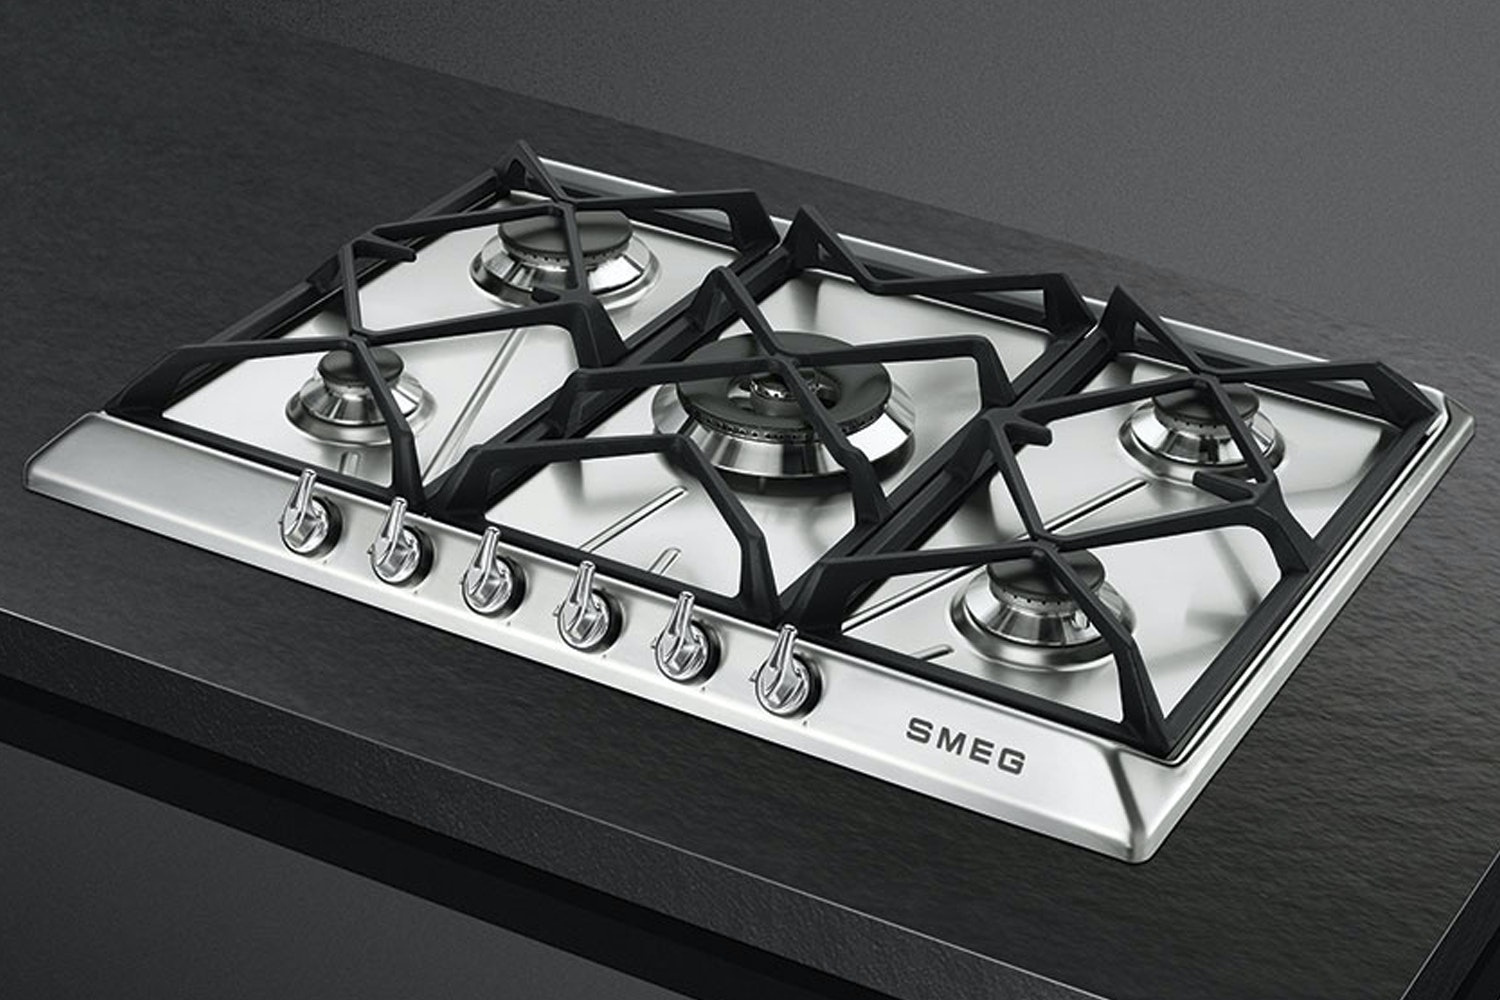 Smeg 70cm Victoria Aesthetic Gas Hob | Stainless Steel